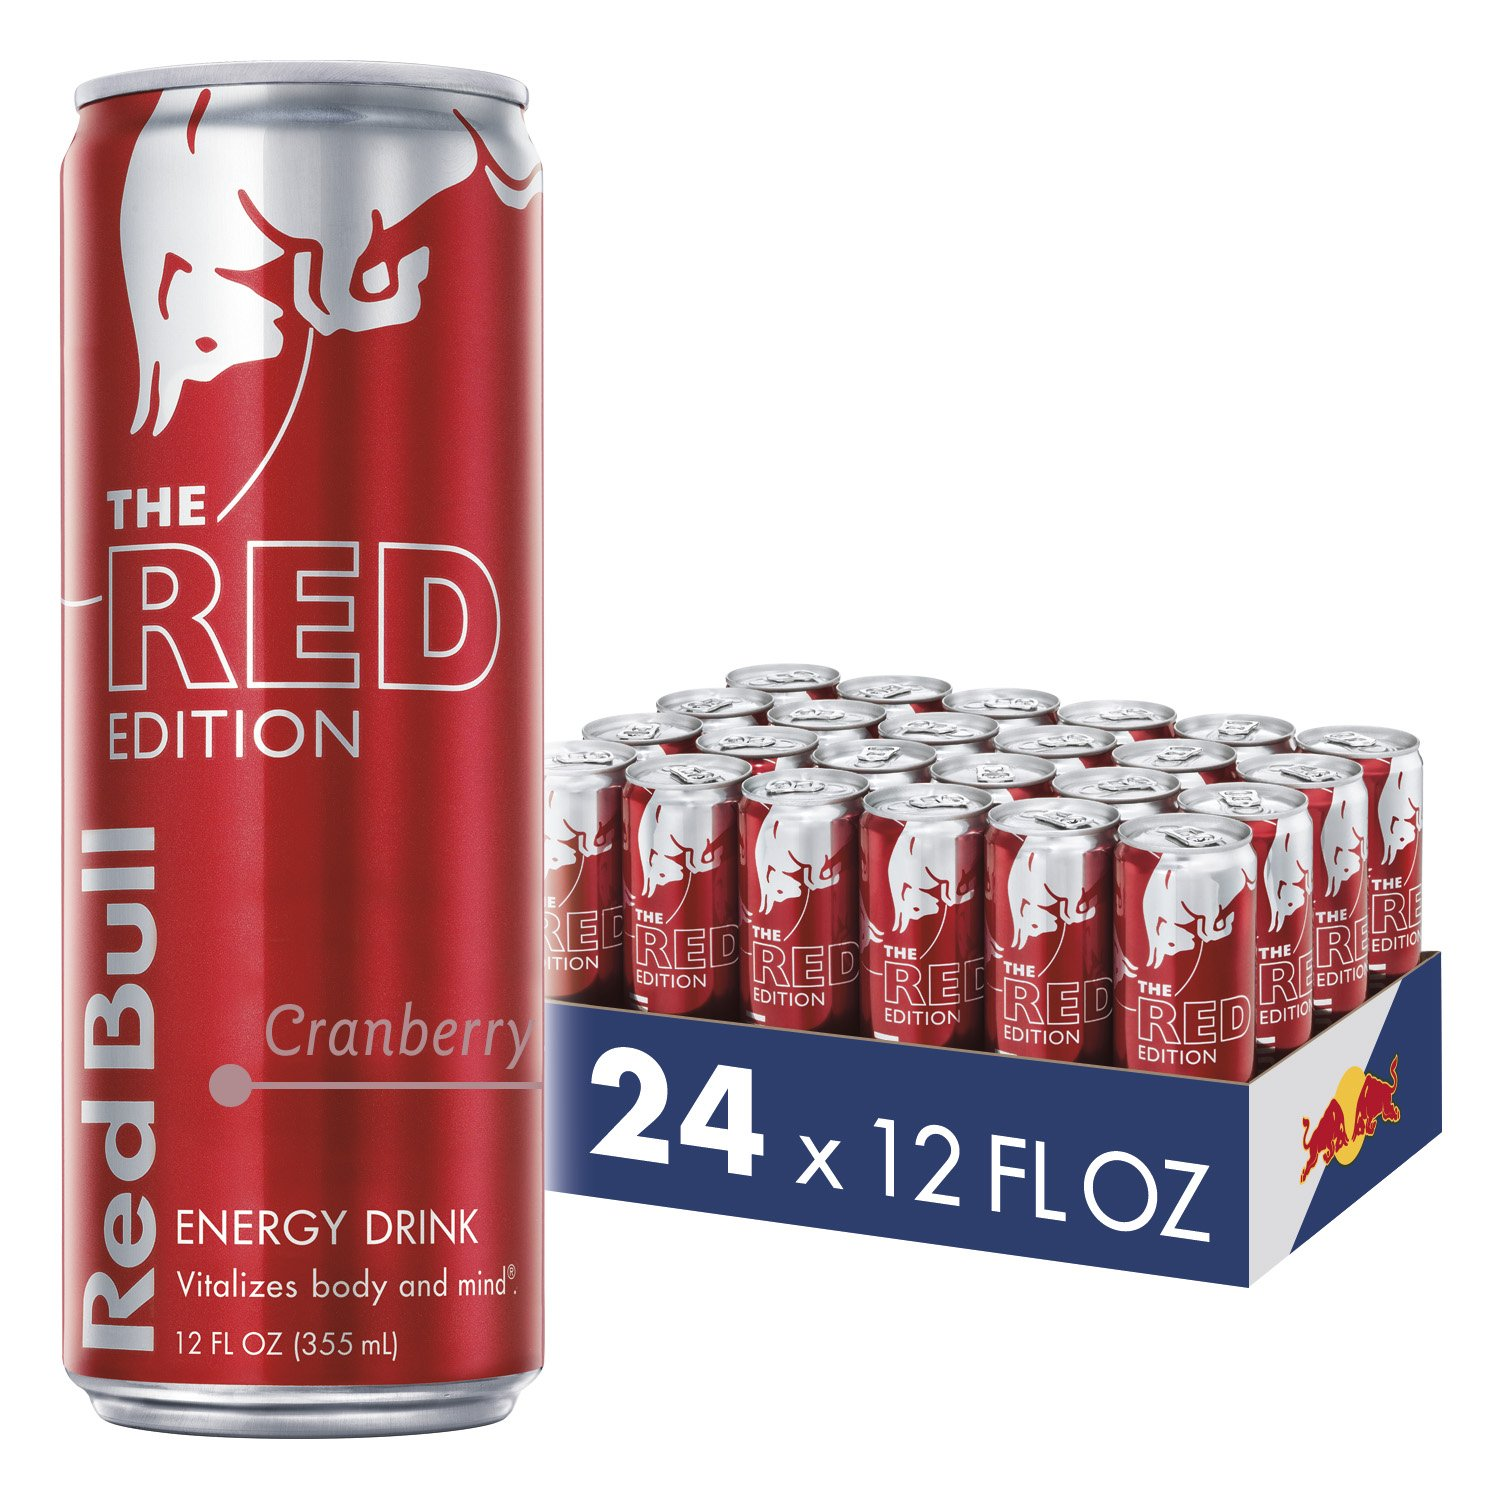 Red Bull Energy Drink, Cranberry, 24 Pack of 12 Fl Oz, Red Edition by Red Bull (Image #1)